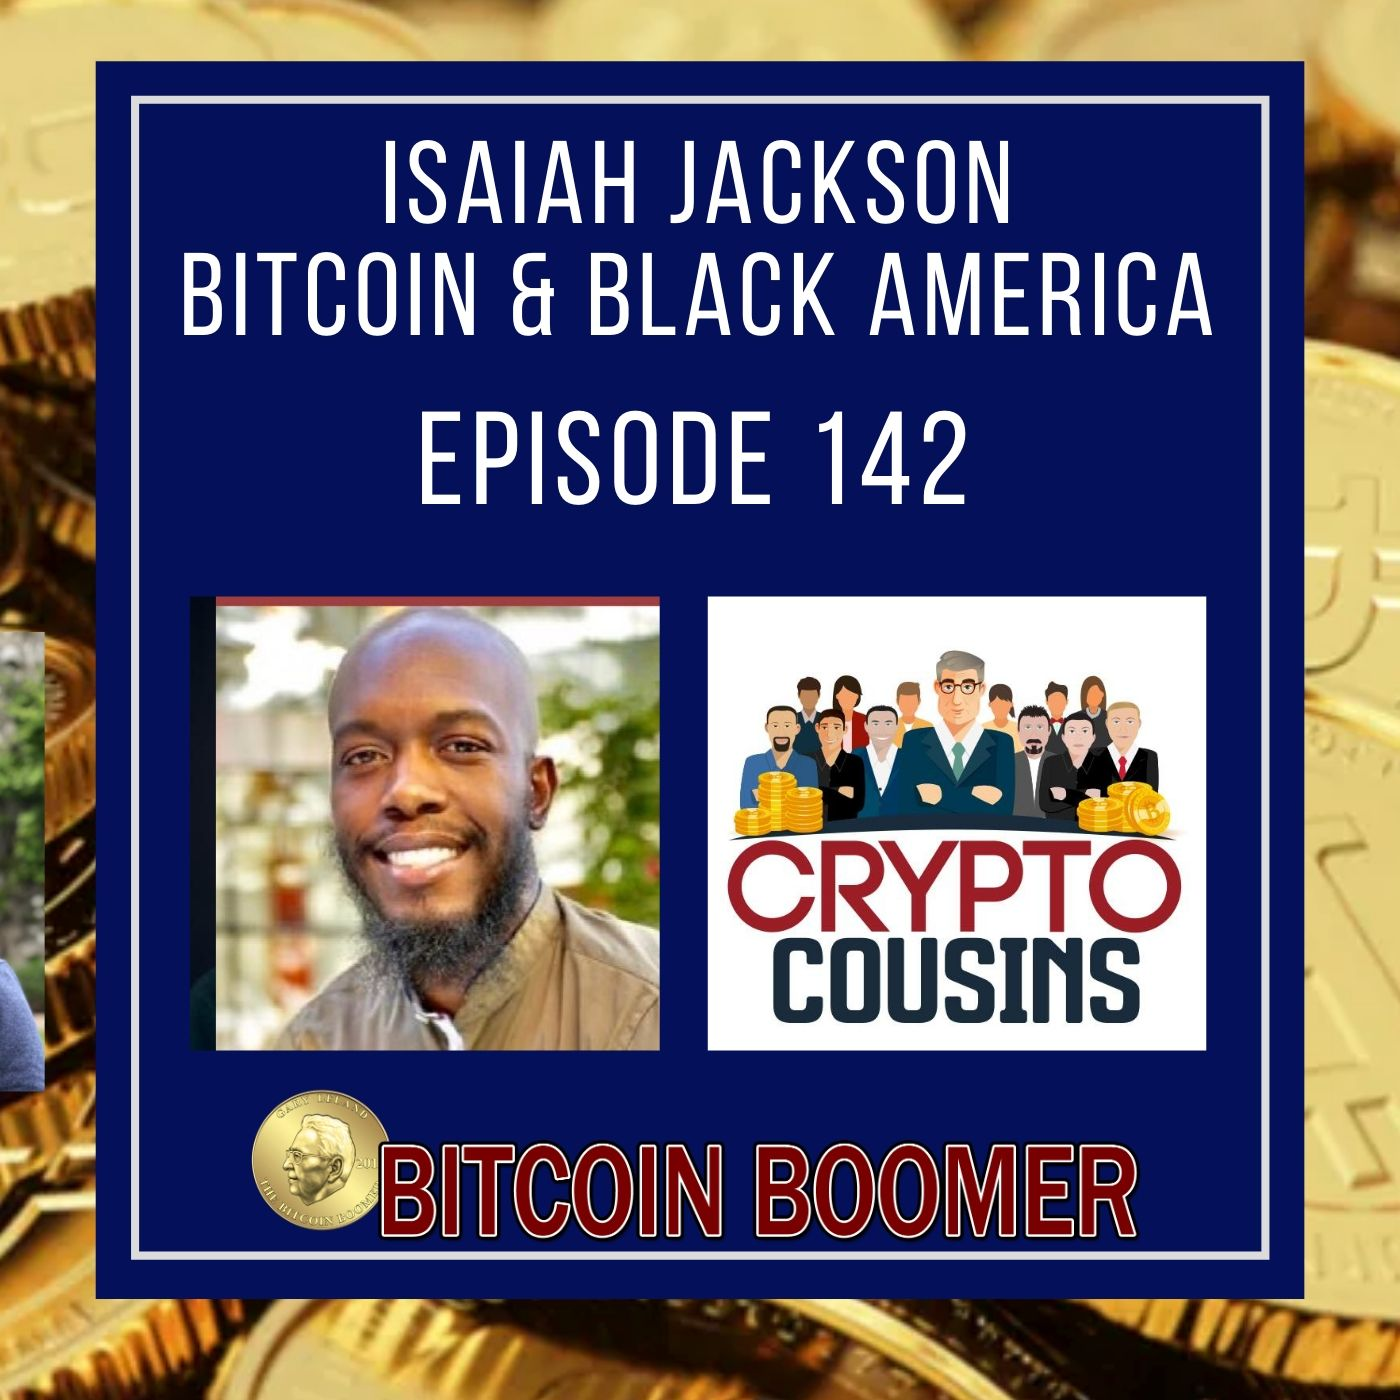 Isaiah Jackson -  Bitcoin and Black America